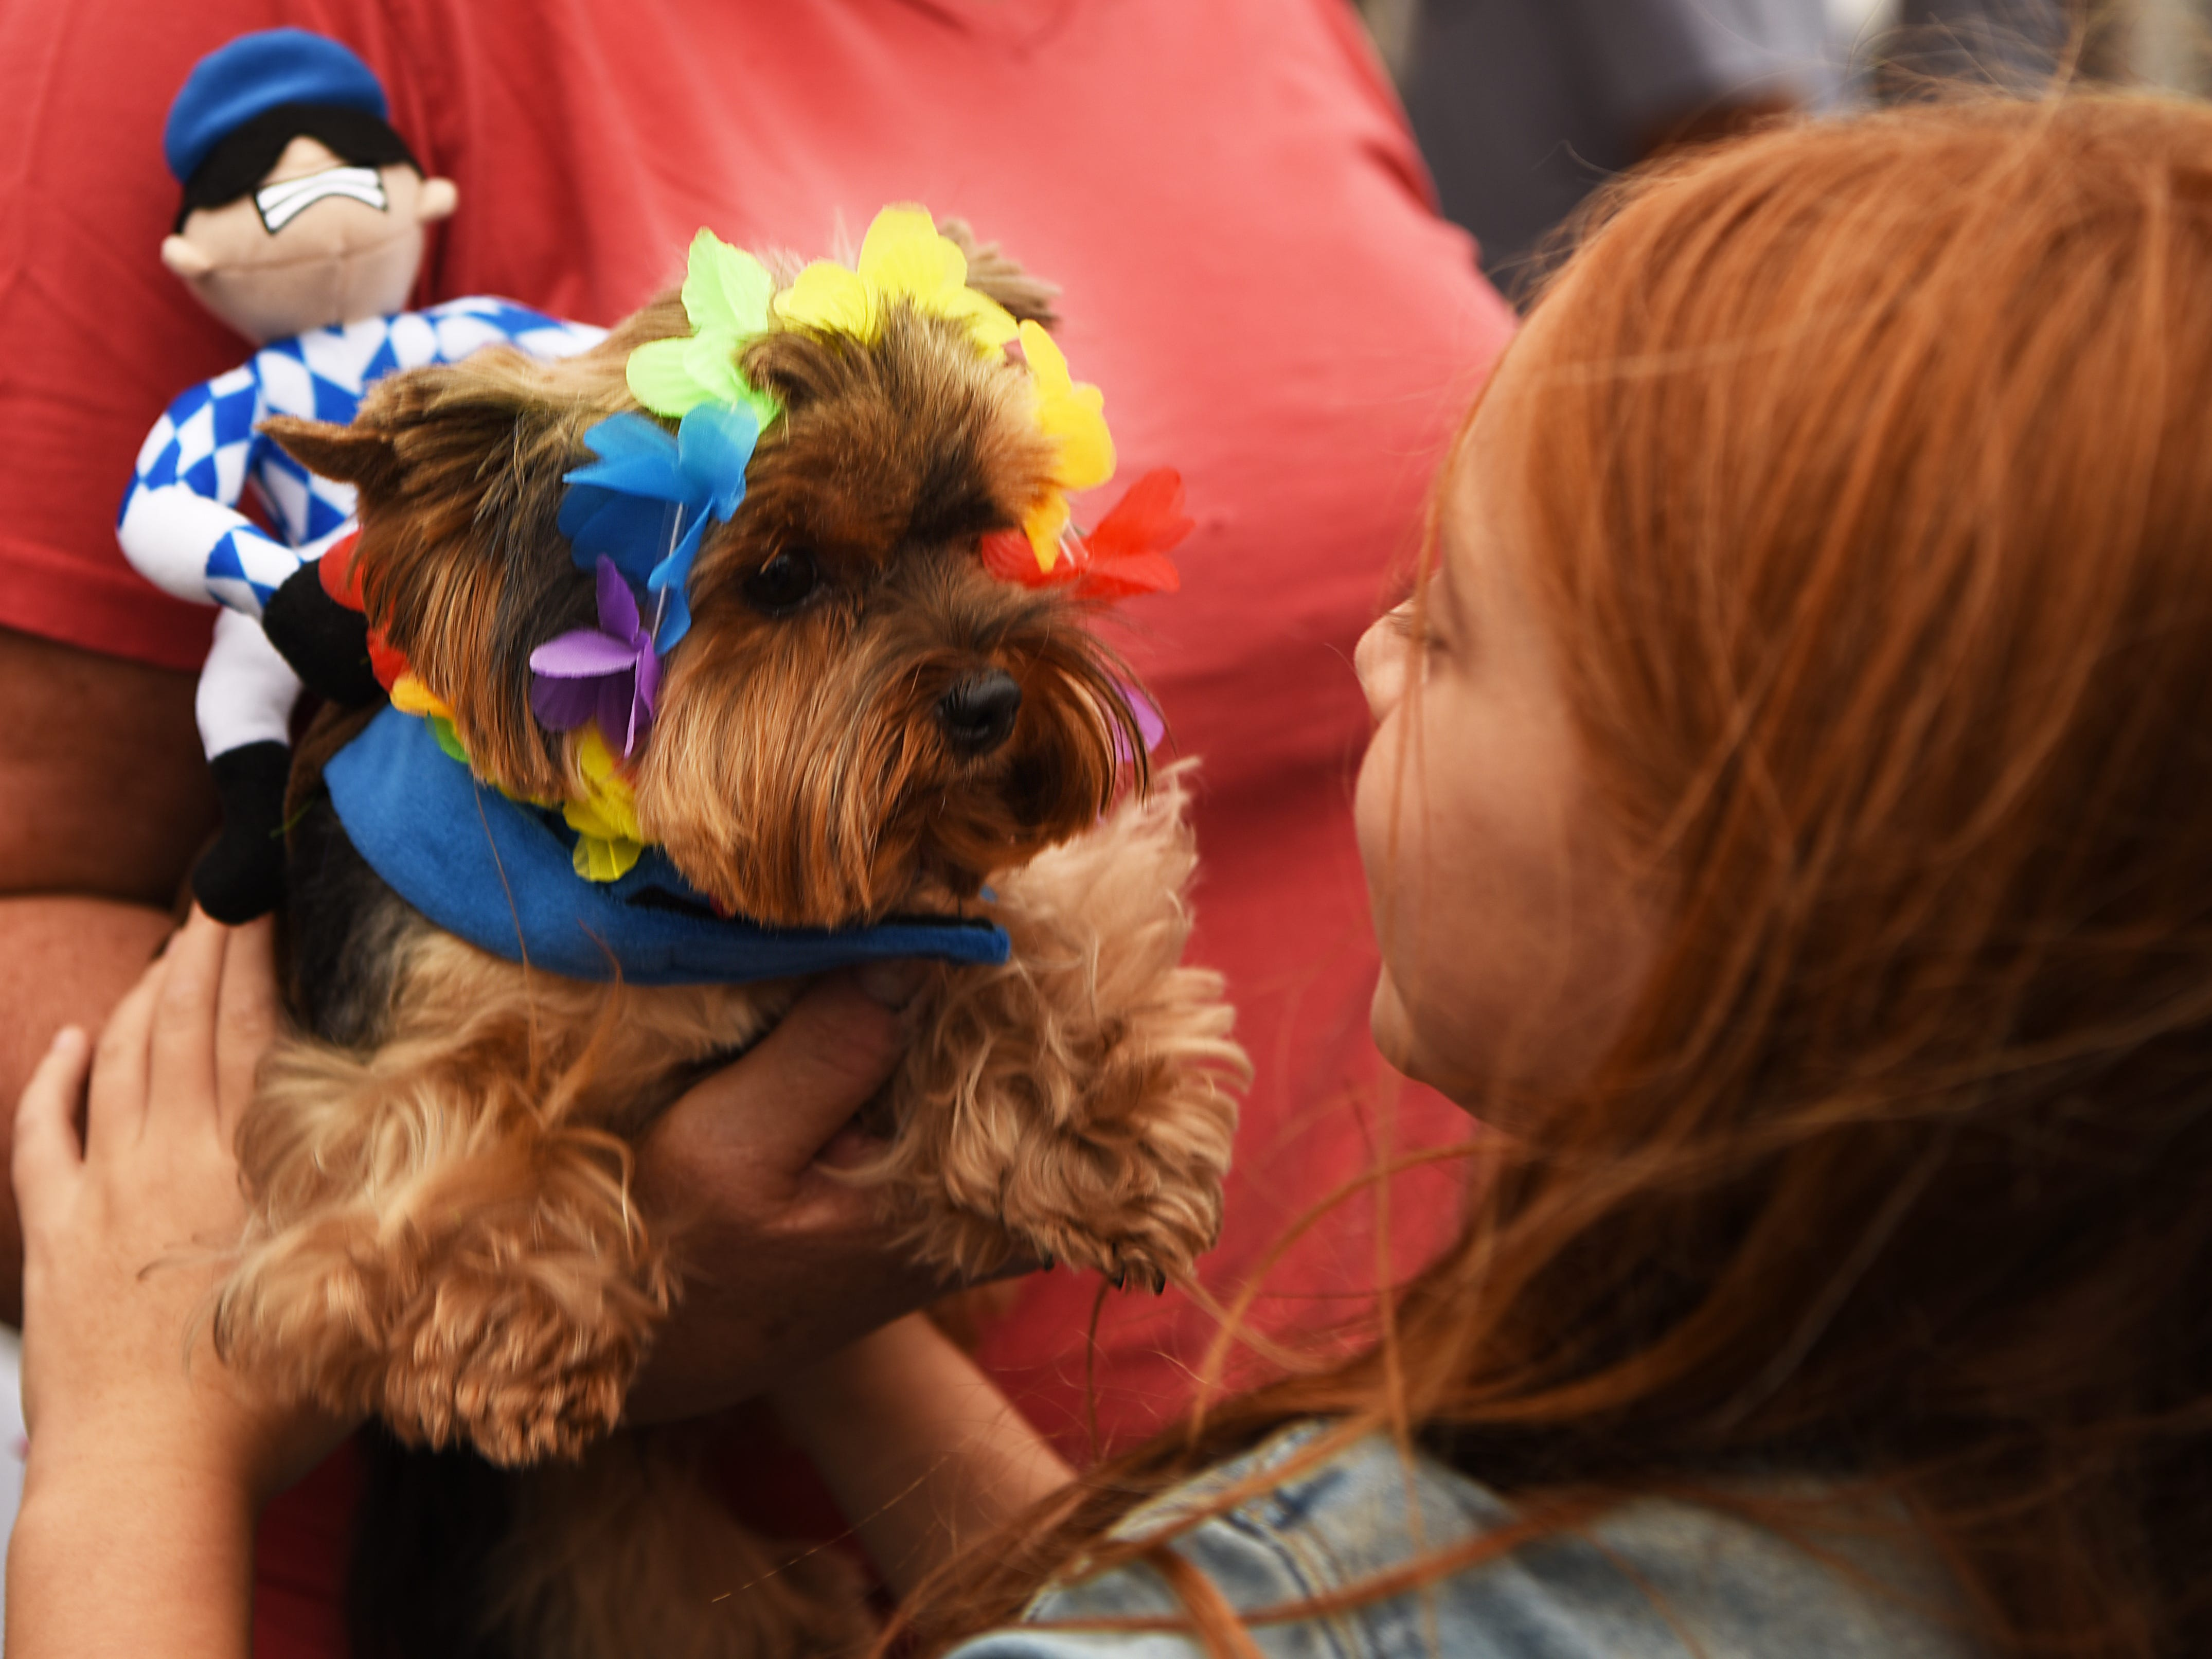 Angelina, a two year old Yorkie from west New York wears a costume with a jockey on her back, and is greeted by Emma Appel, six years old from Edgewater. Woofstock 2018, a benefit for Bergen County animal rescue organizations, at City Place in Edgewater on Saturday September 8, 2018.